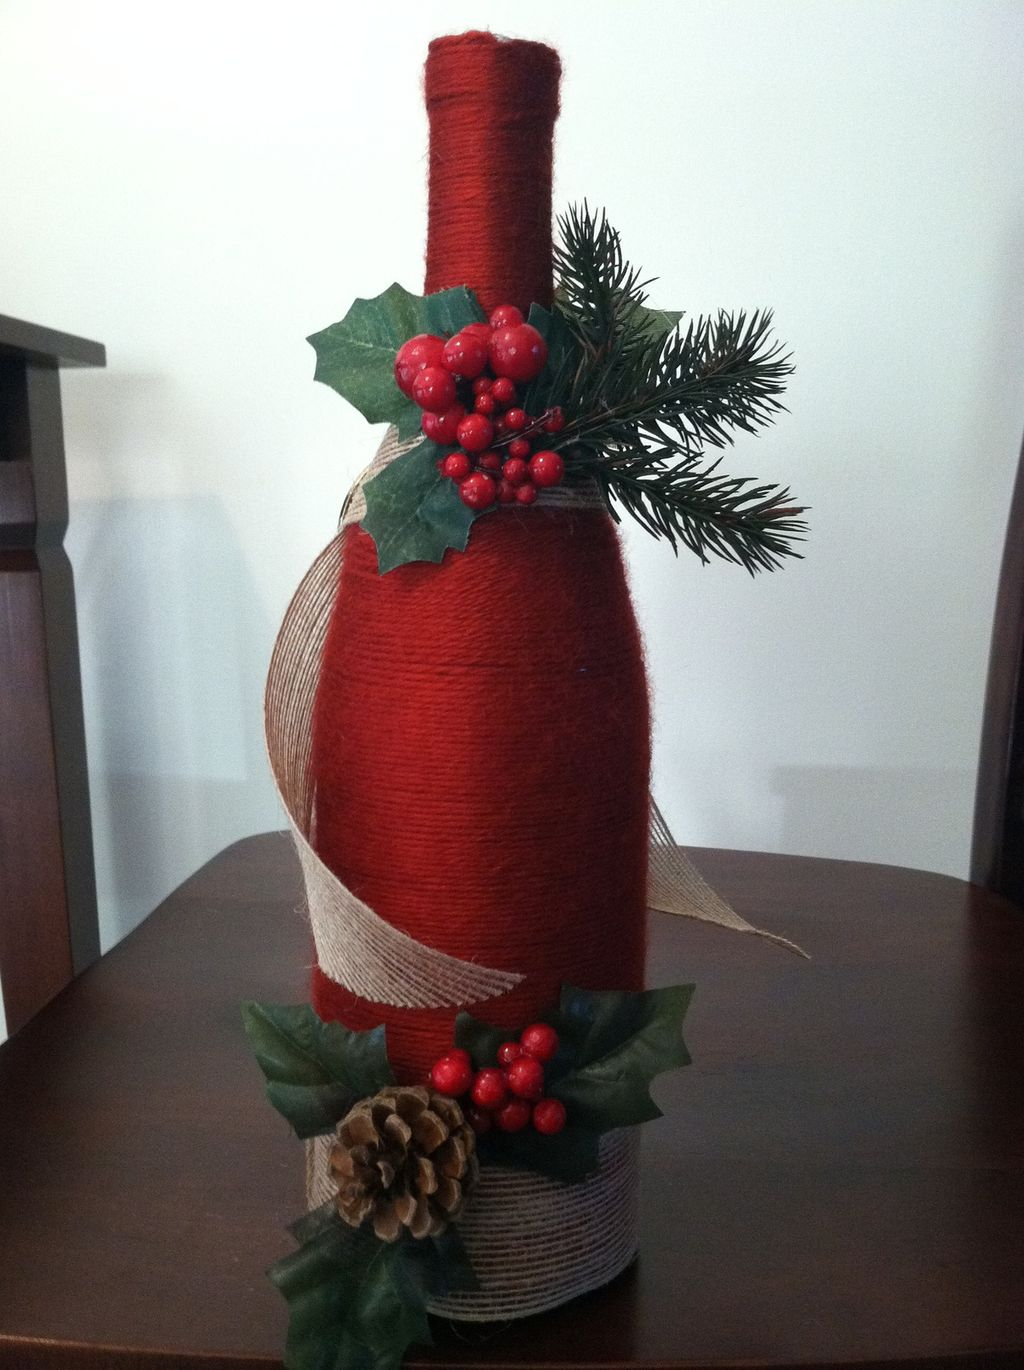 Inspiring Modern Rustic Christmas Centerpieces Ideas With Candles 79